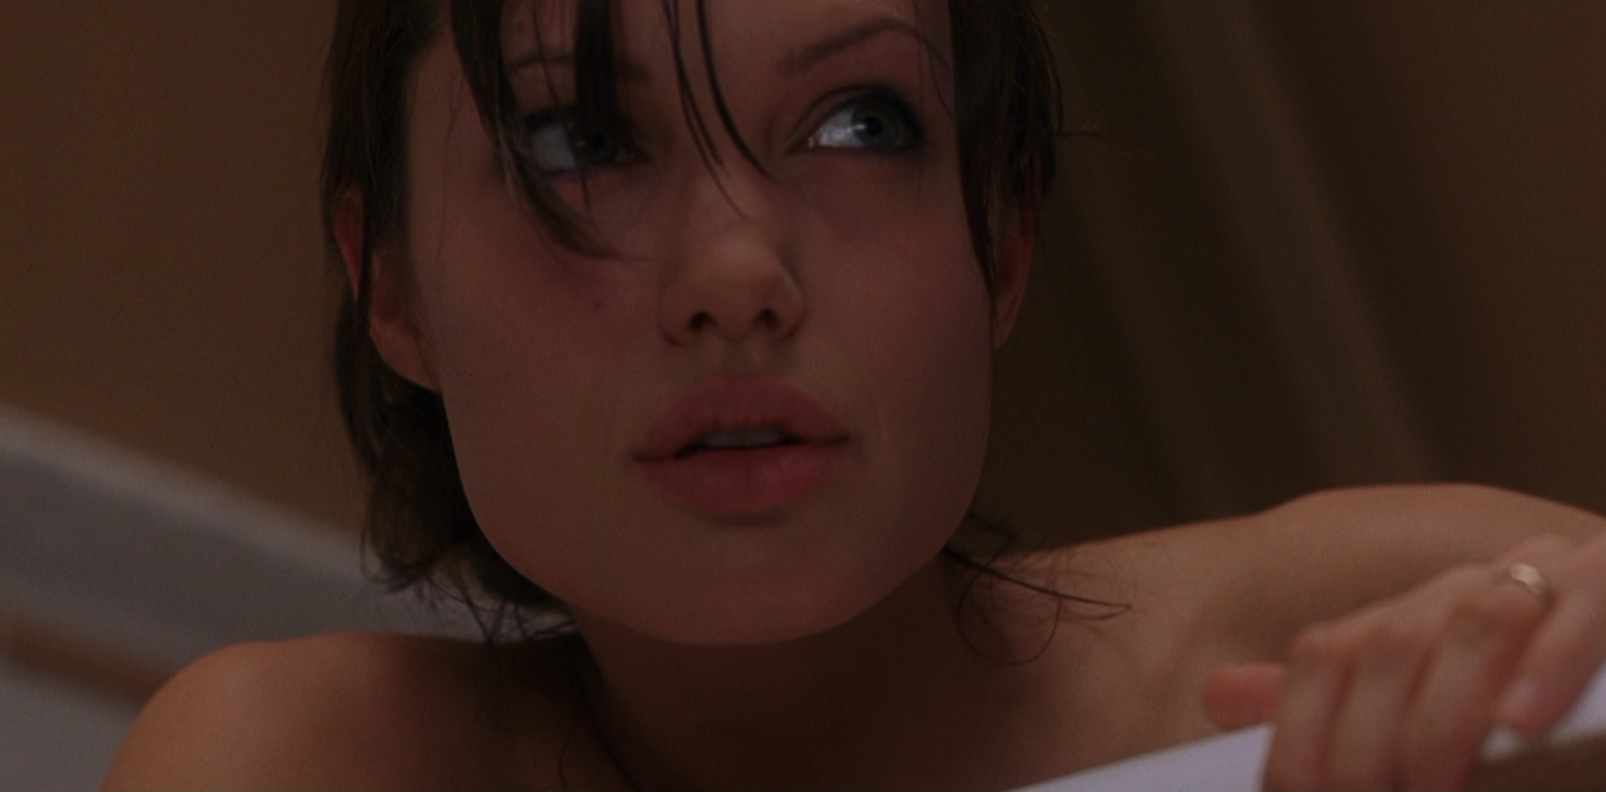 Top 15 Smokin' Hot Angelina Jolie Characters | TheRichest